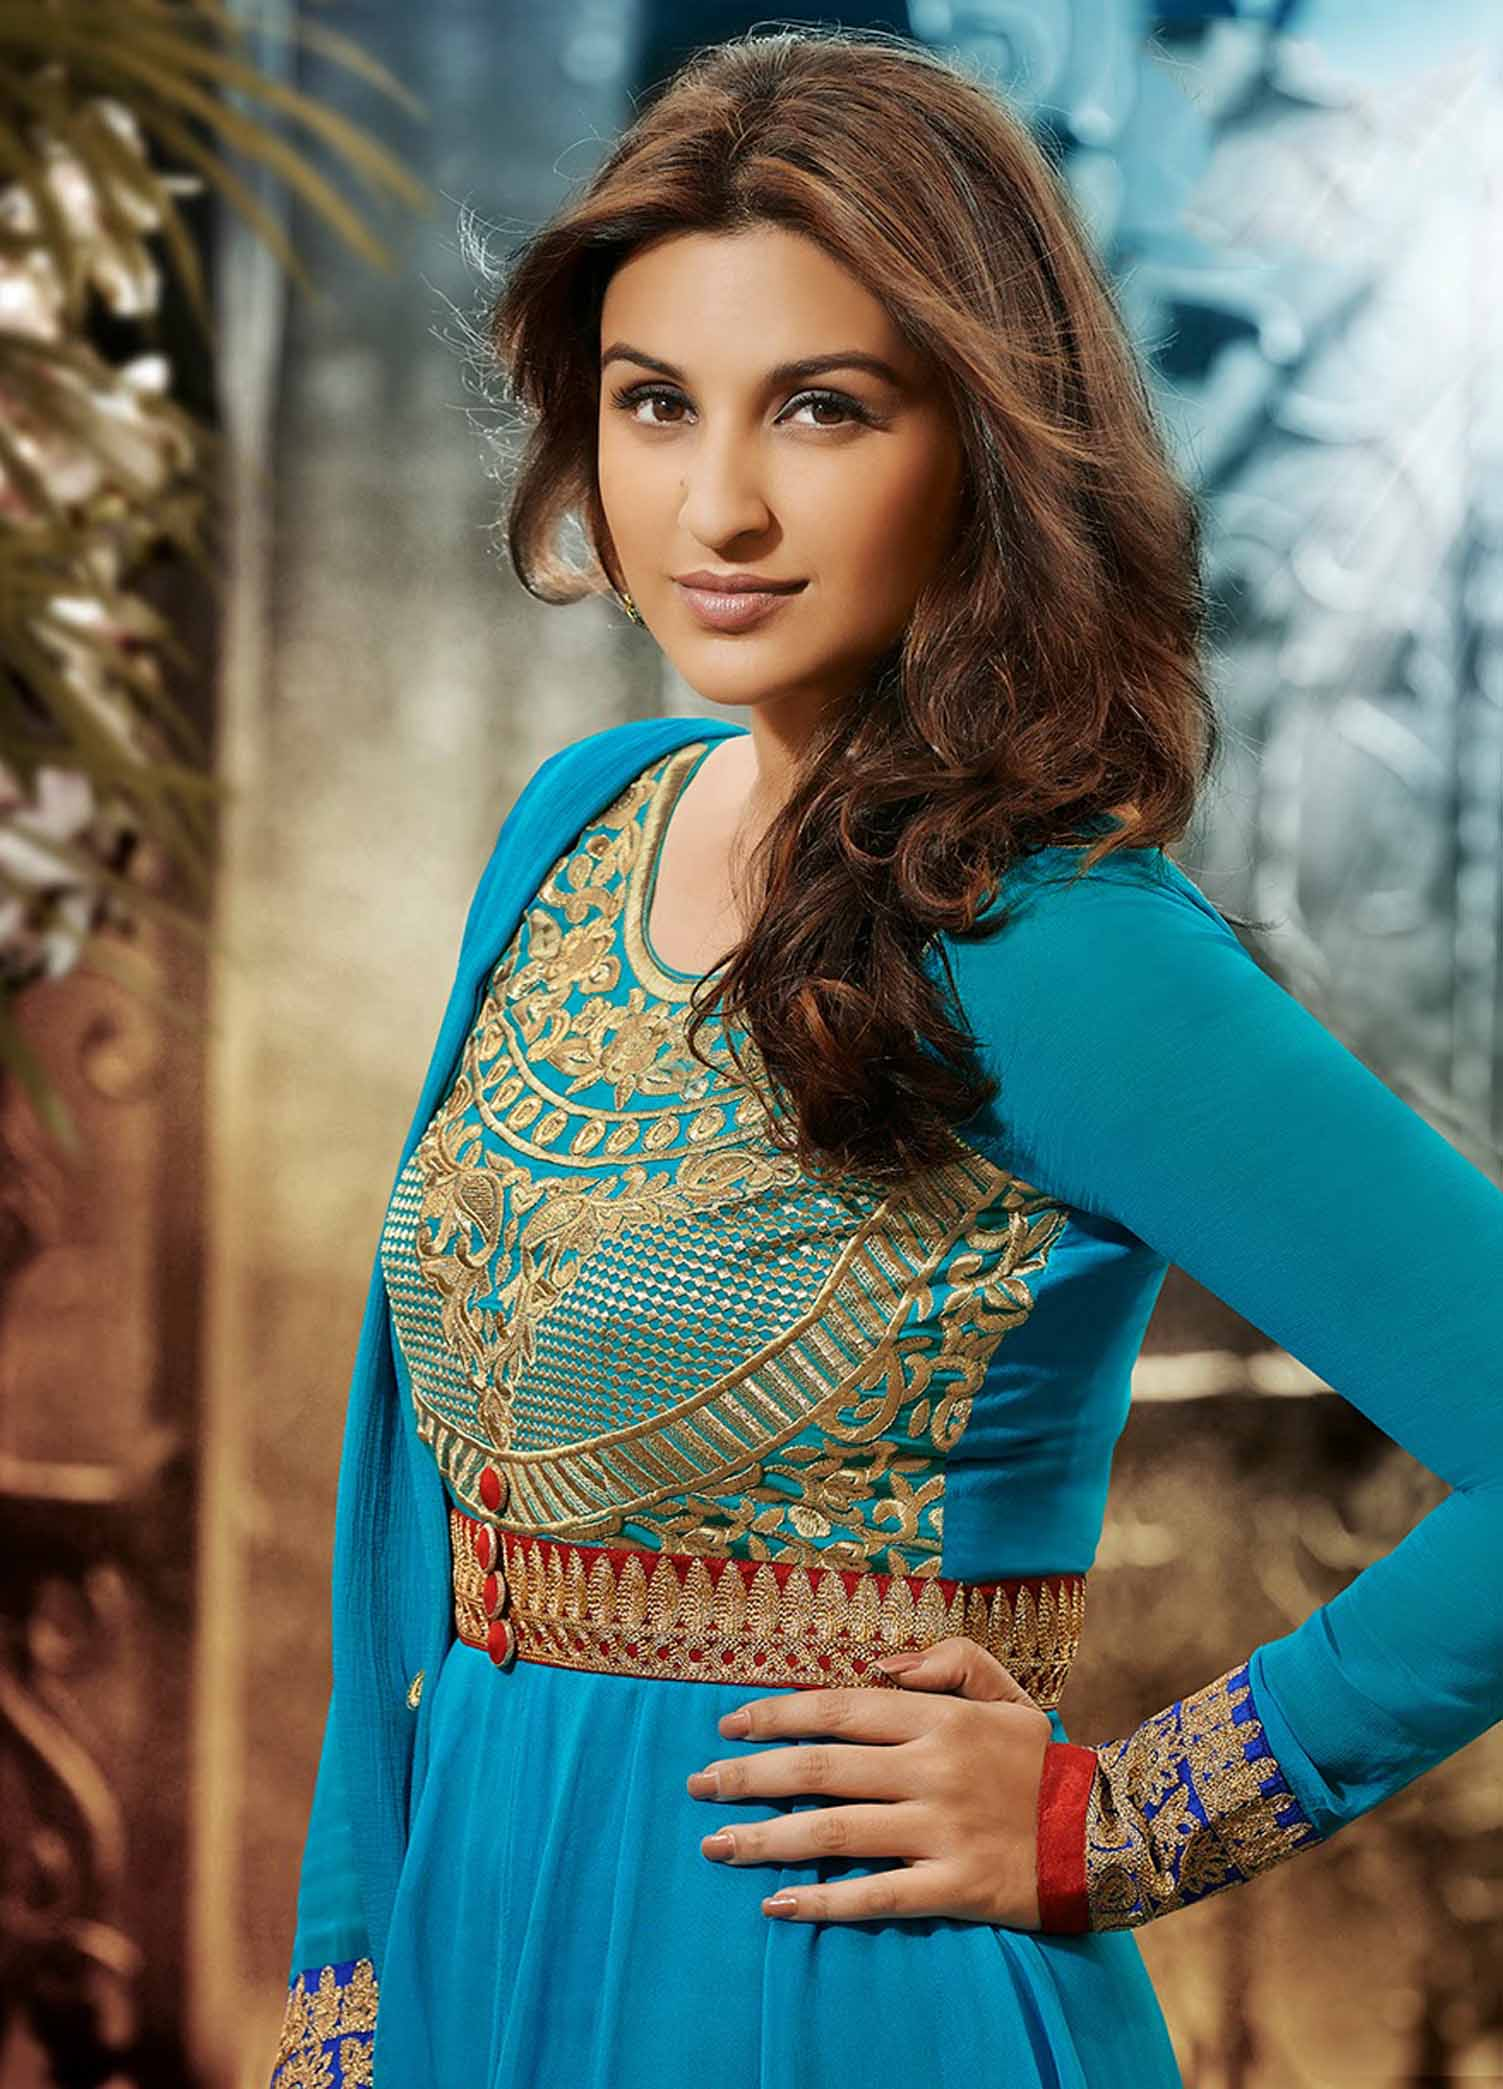 Amazing Parineeti Chopra Beautiful Look Mobile Hd Background Free Download Images